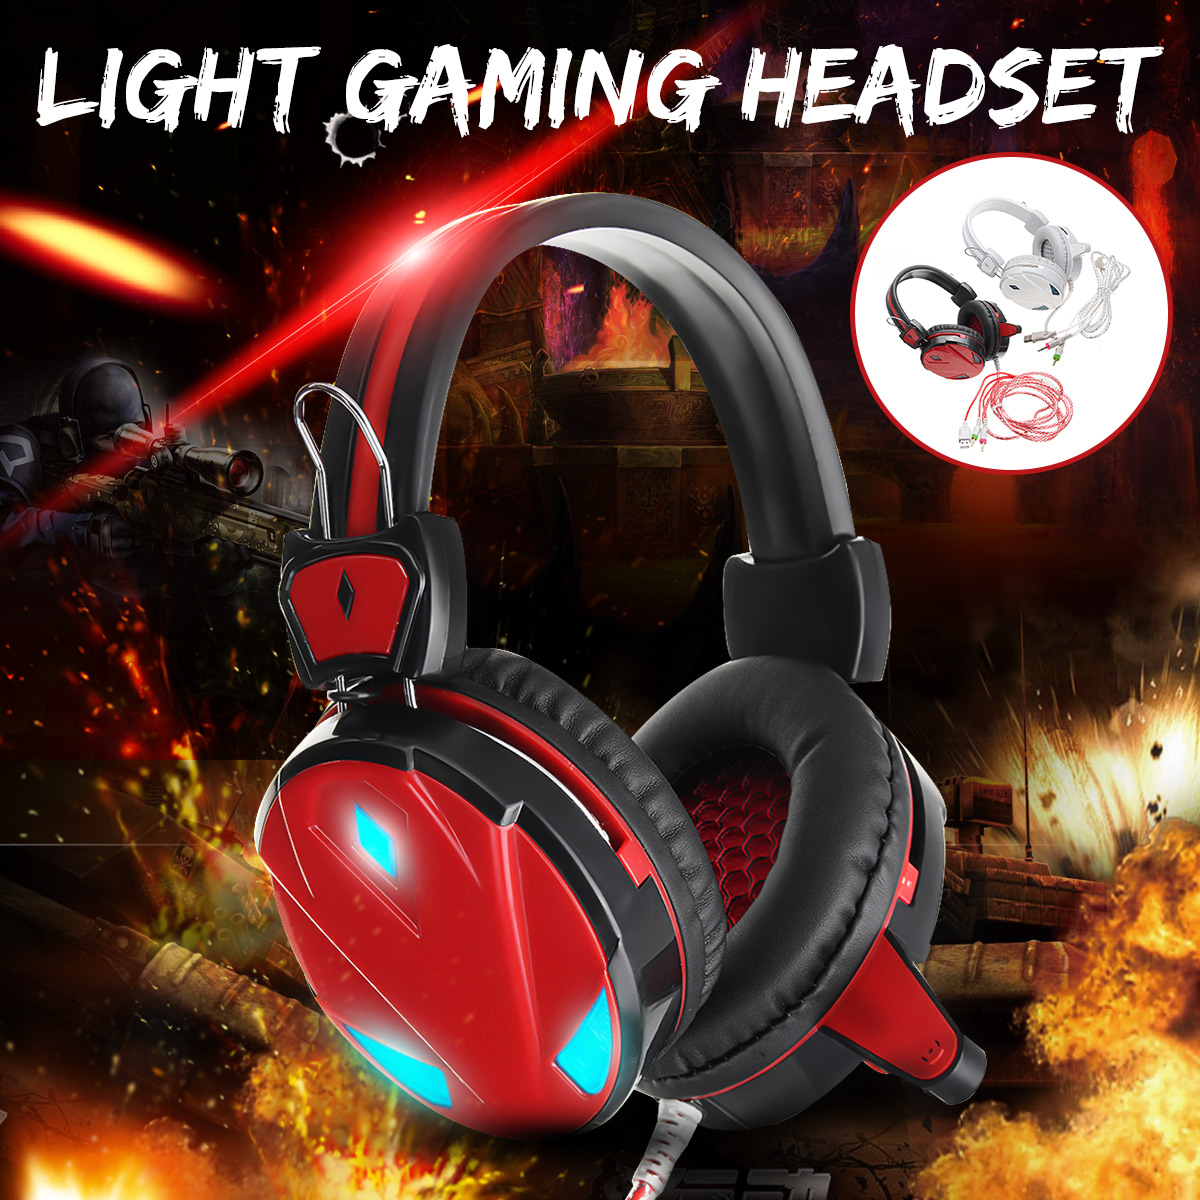 Kinco 3.5mm USB Luminescence Light Gaming Headset Mic LED Headphone For PC Laptop Tablet With Microphone Earphones 2.5m Cable